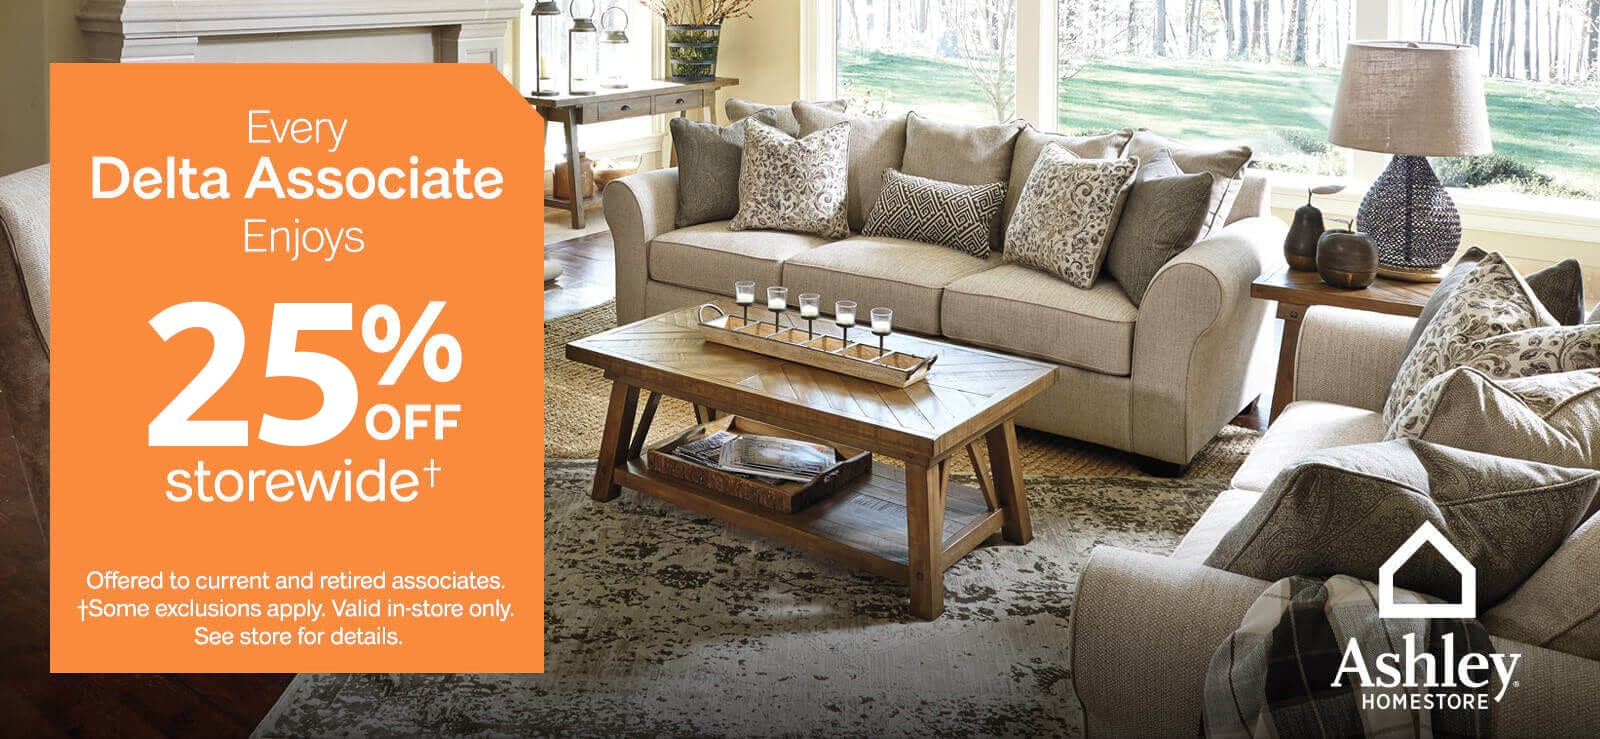 furnish your home exactly as you envision at ashley homestore sectionals beds mattresses accessories and more you can count on america s 1 furniture